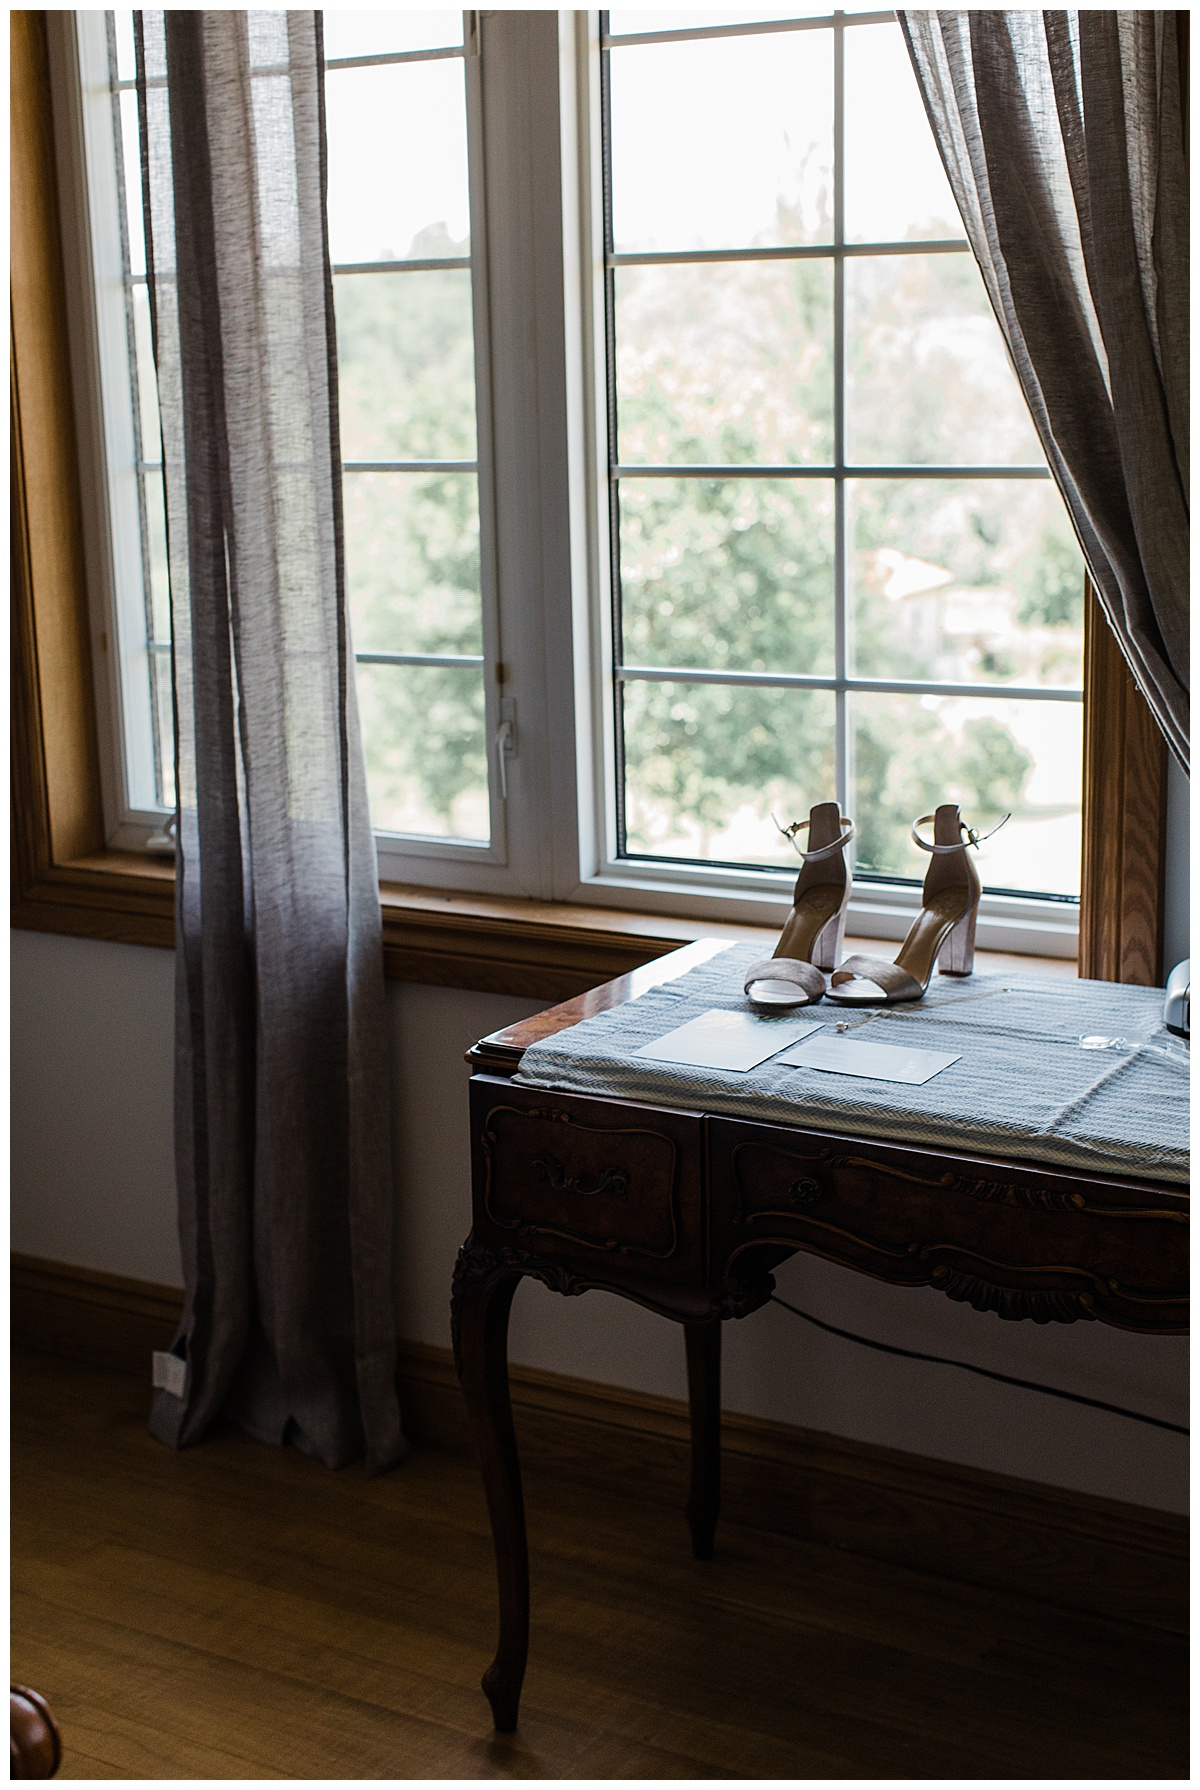 Wedding shoes on table in window light  Ontario wedding  Toronto wedding photographer  3photography